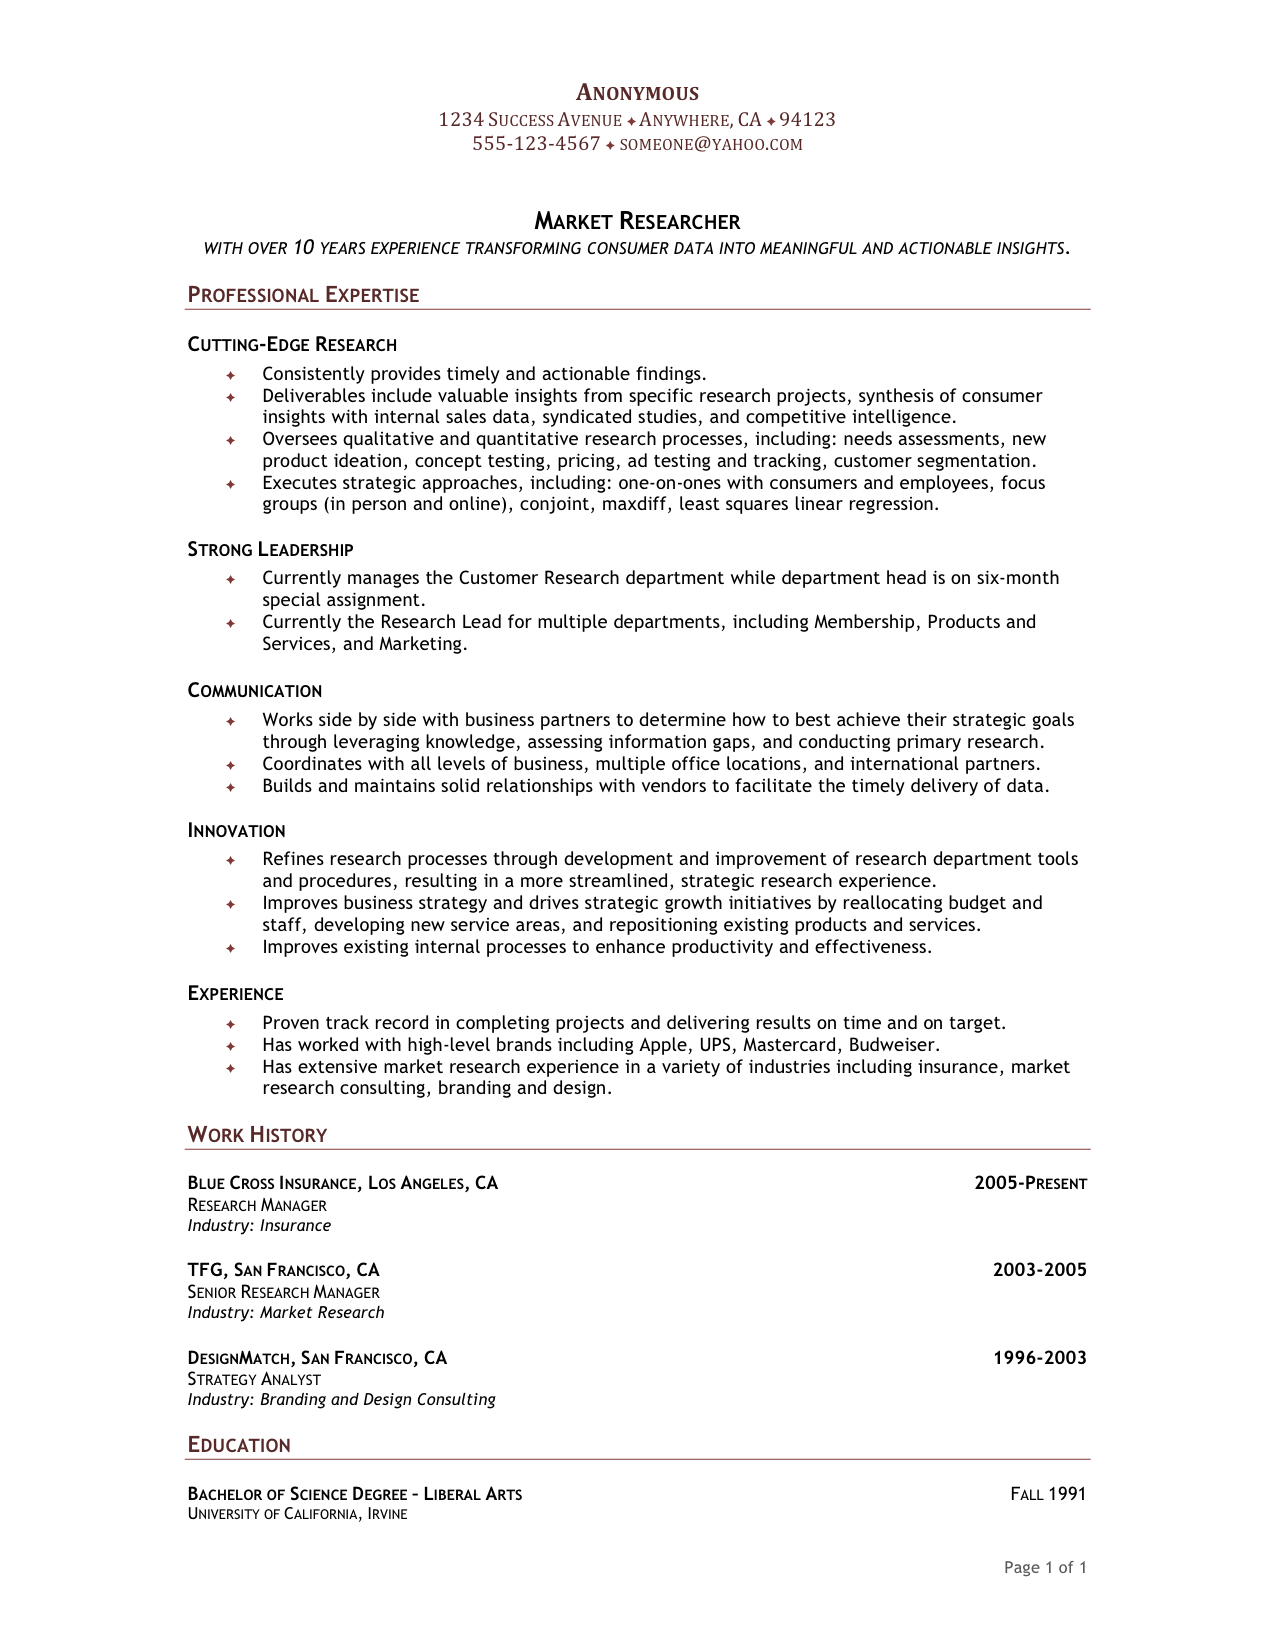 functional chronological resumes template functional chronological resumes